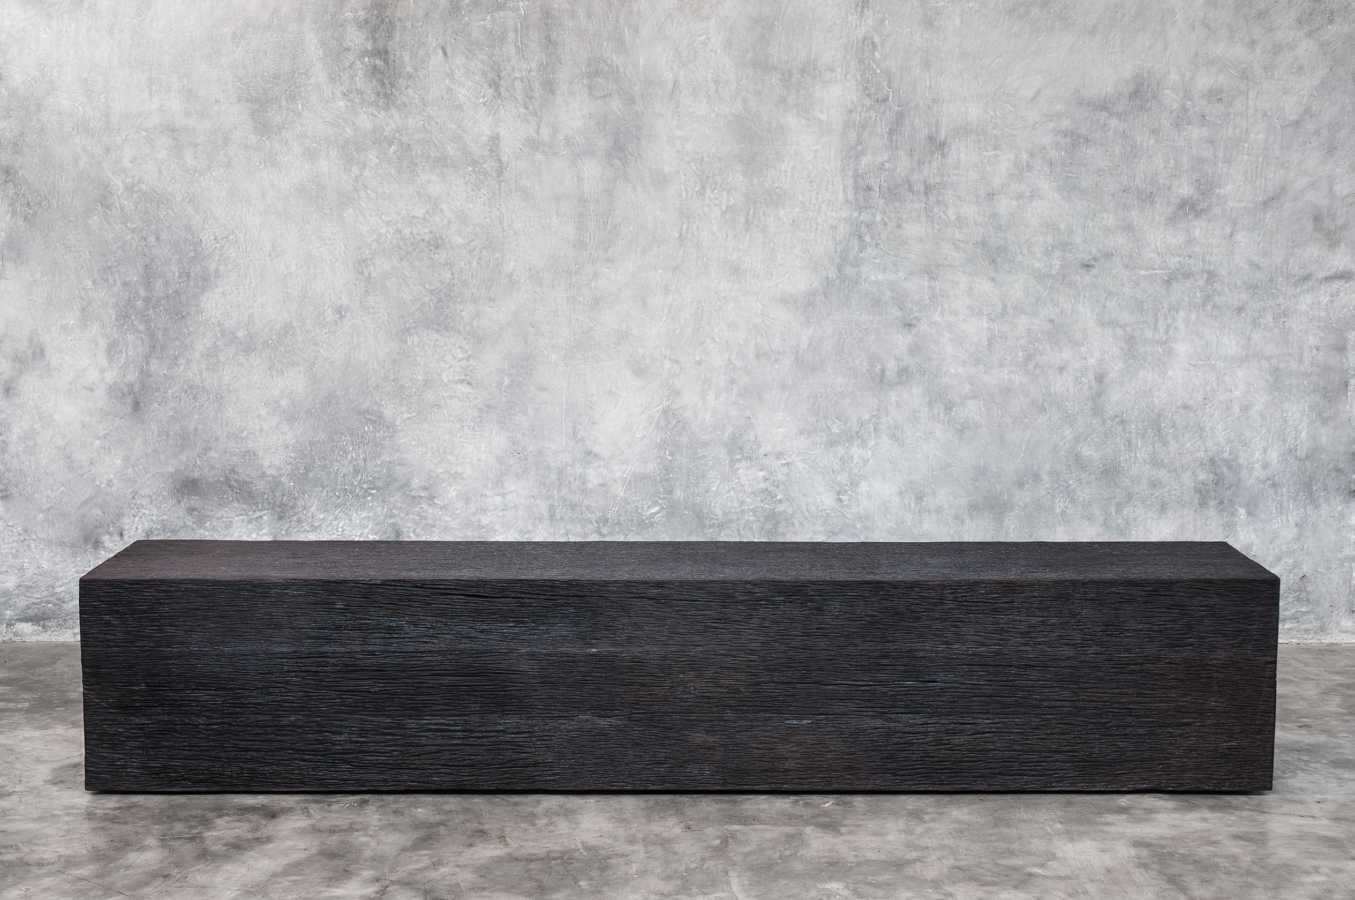 KALIMANTAN COLLECTION ERODED IRON WOOD BENCH 1 - 220x40x42cm 87x16x17' Custom size on request